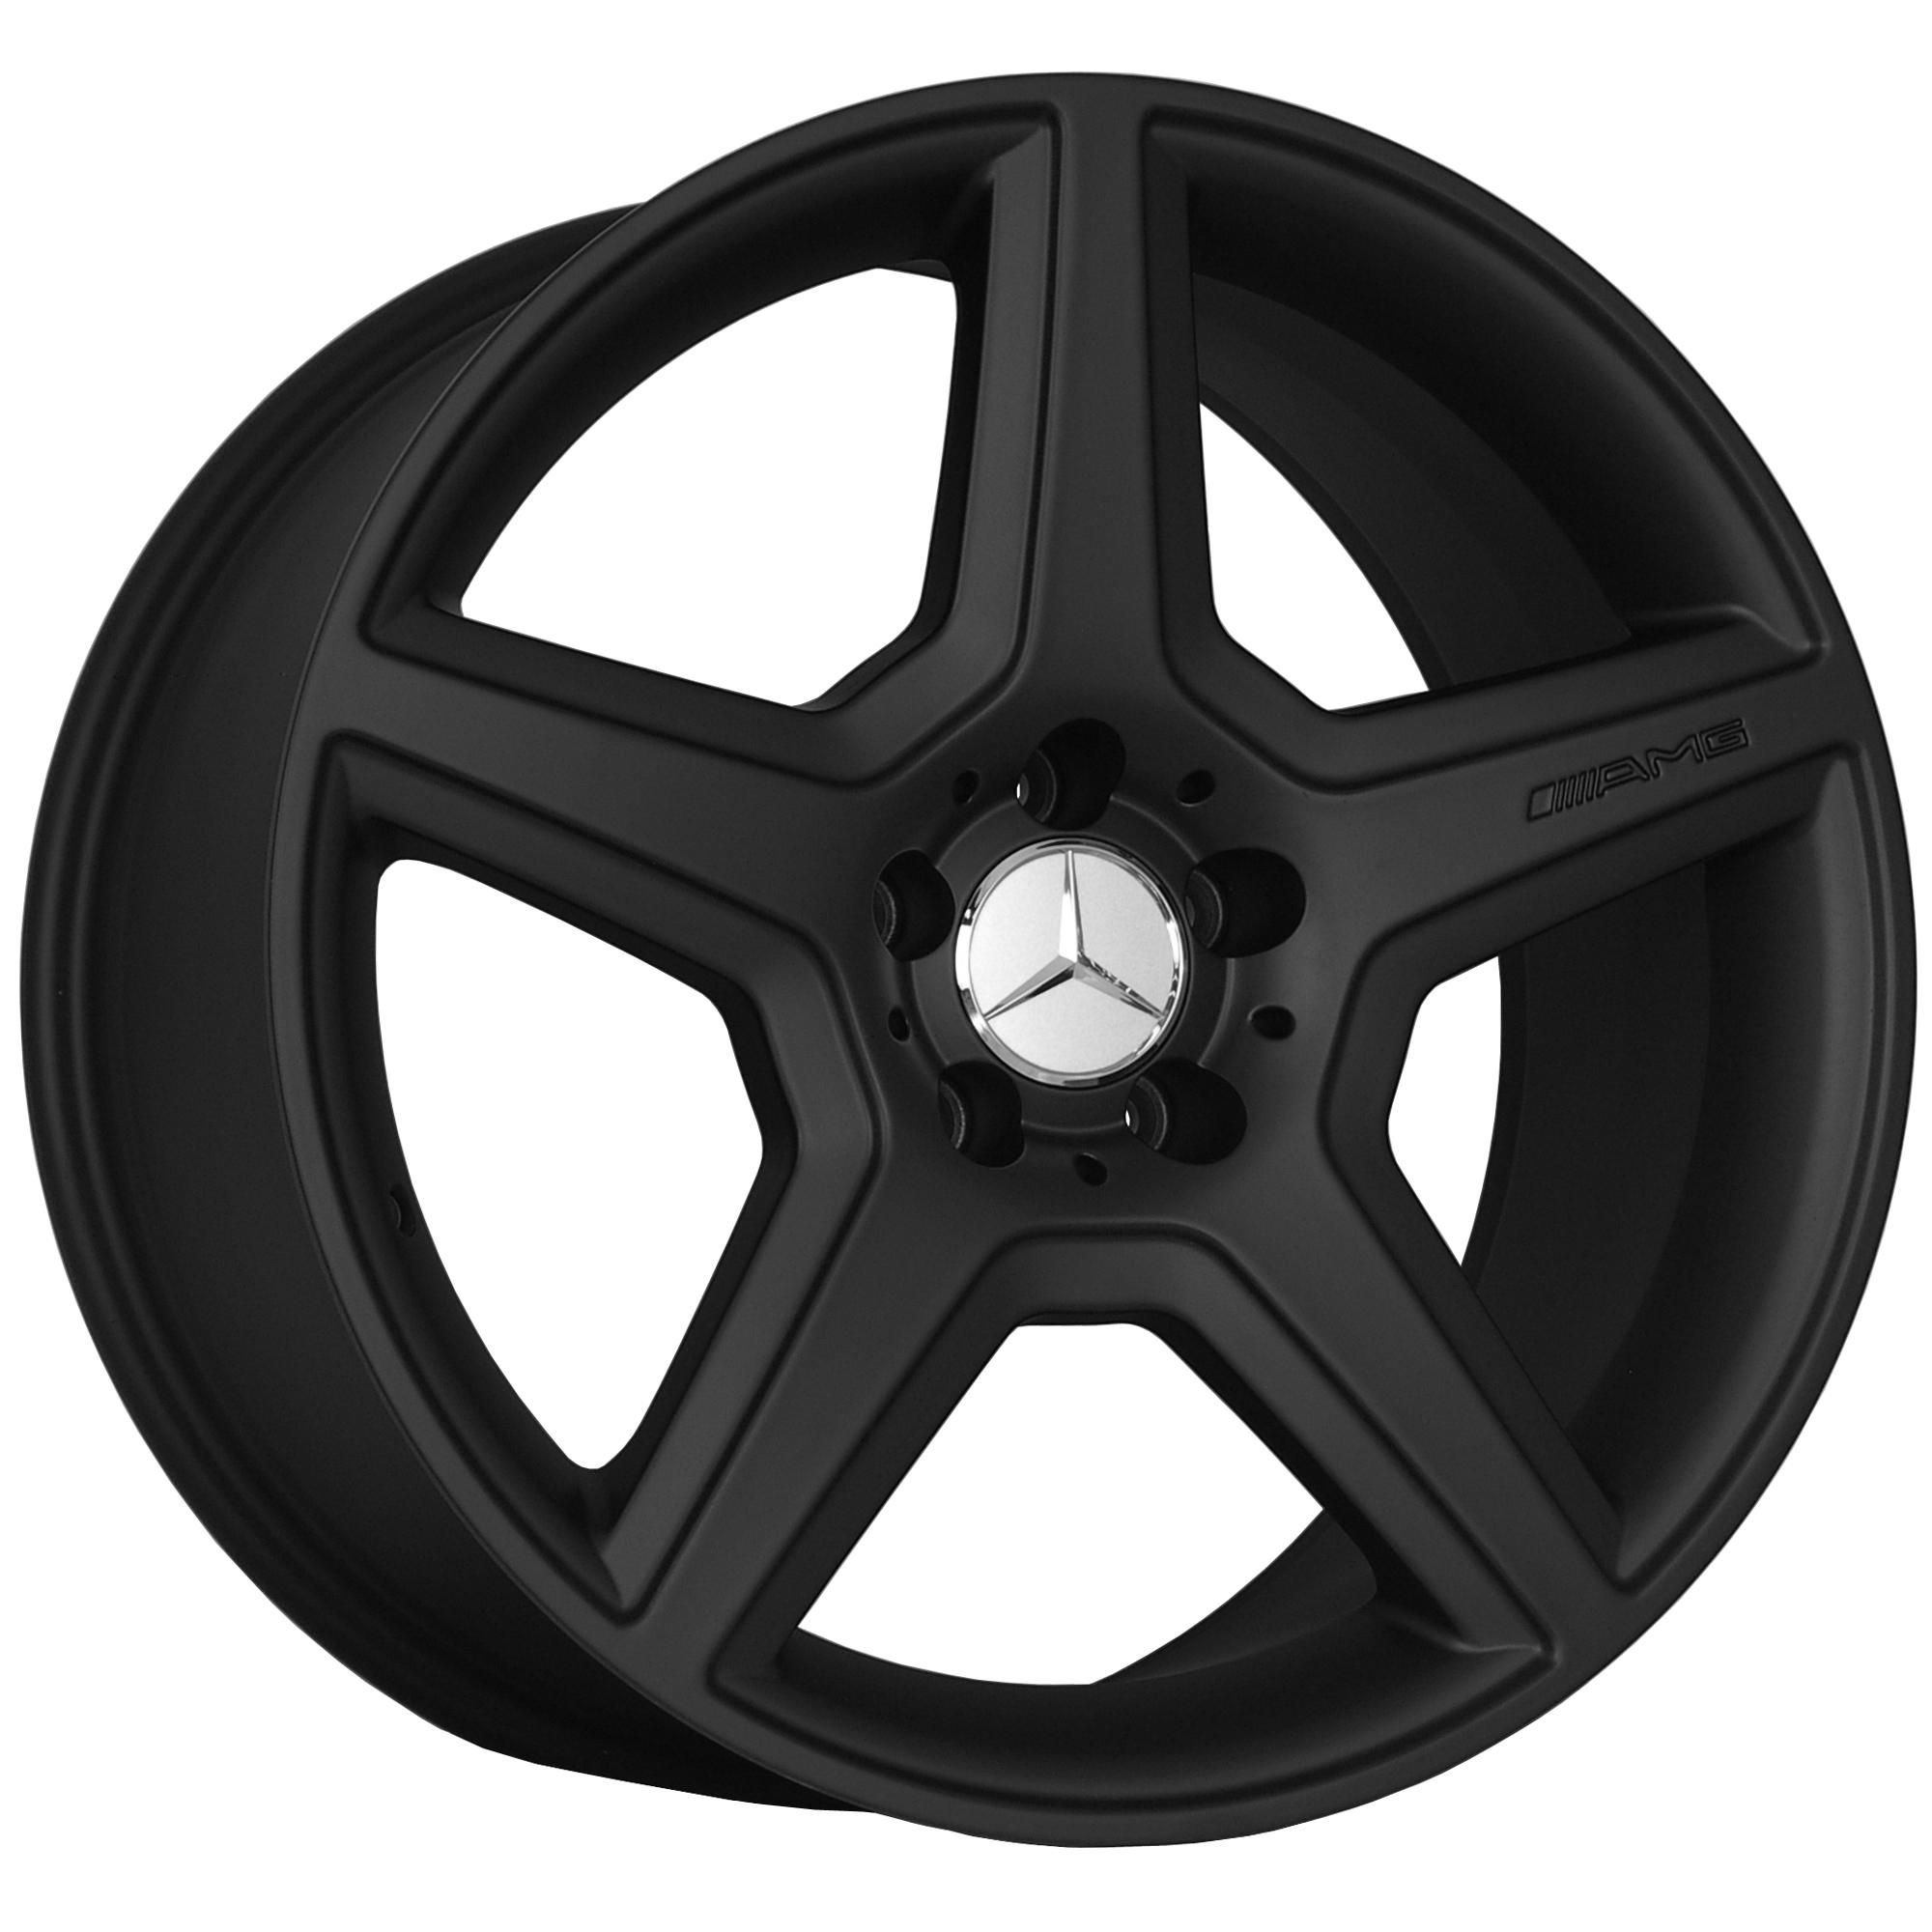 19 CLS55 AMG Style Staggered Wheels Rims Fit Mercedes C230 C240 C280